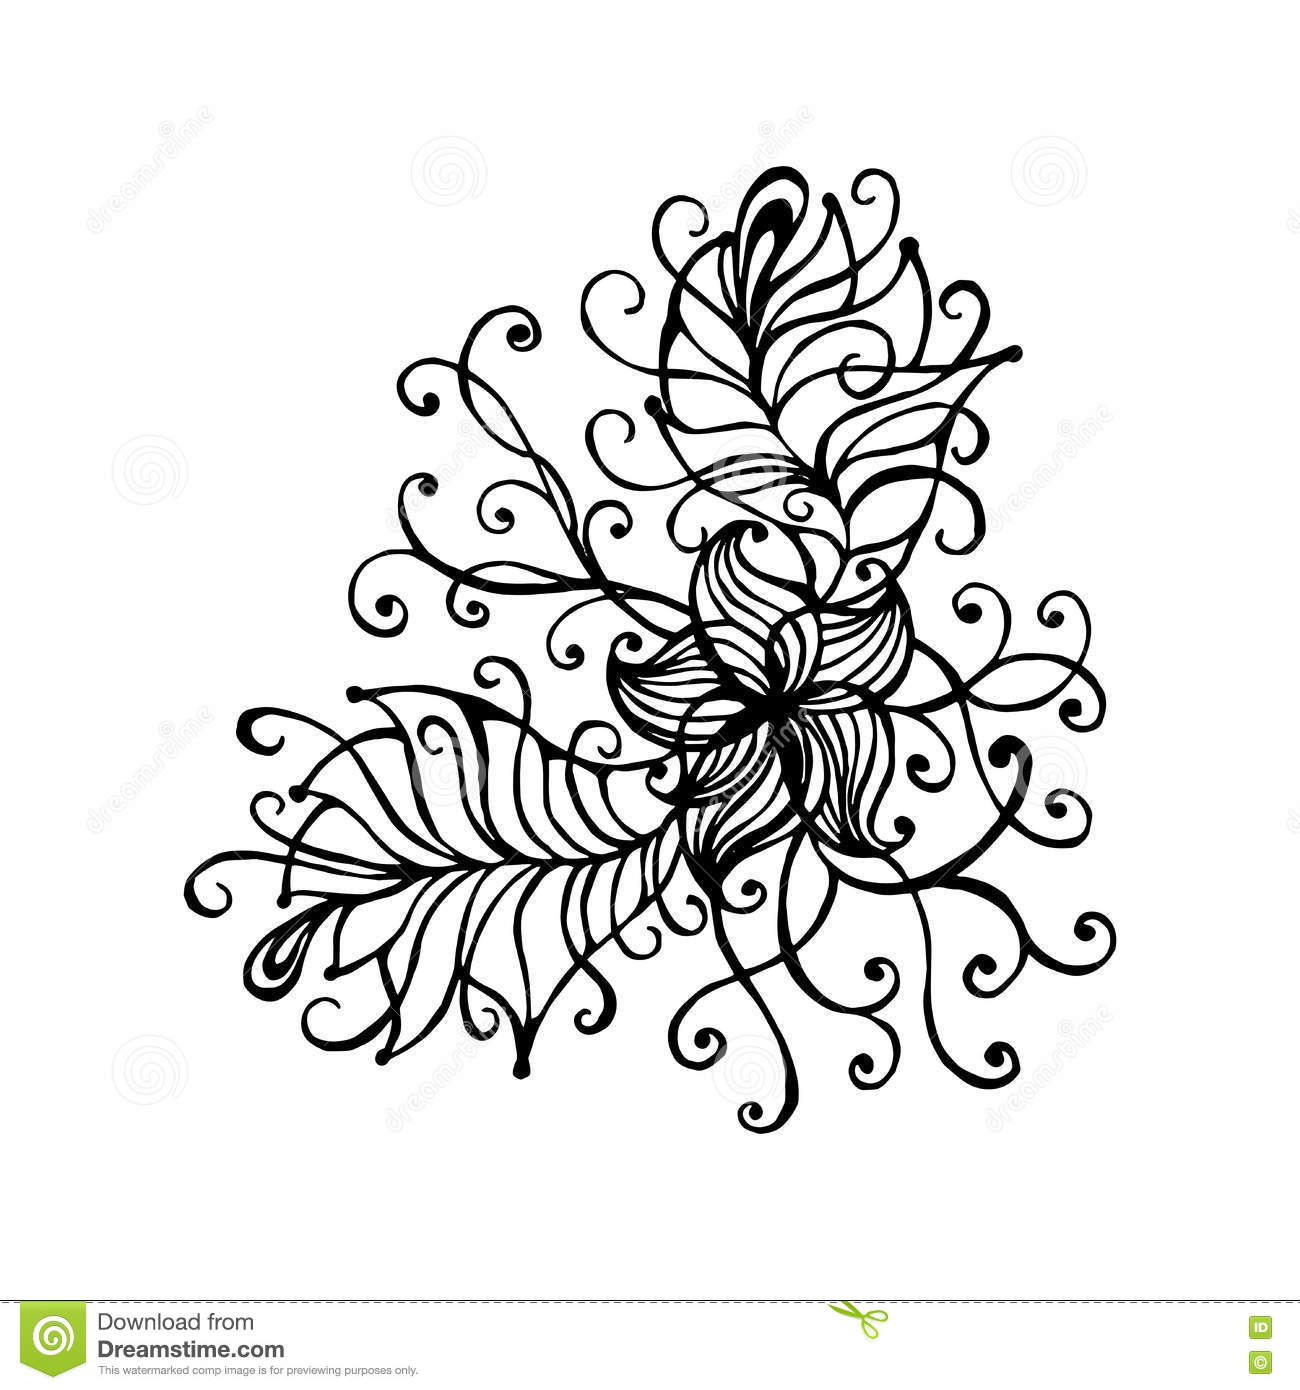 hand drawn doodle outline magic line art element with floral